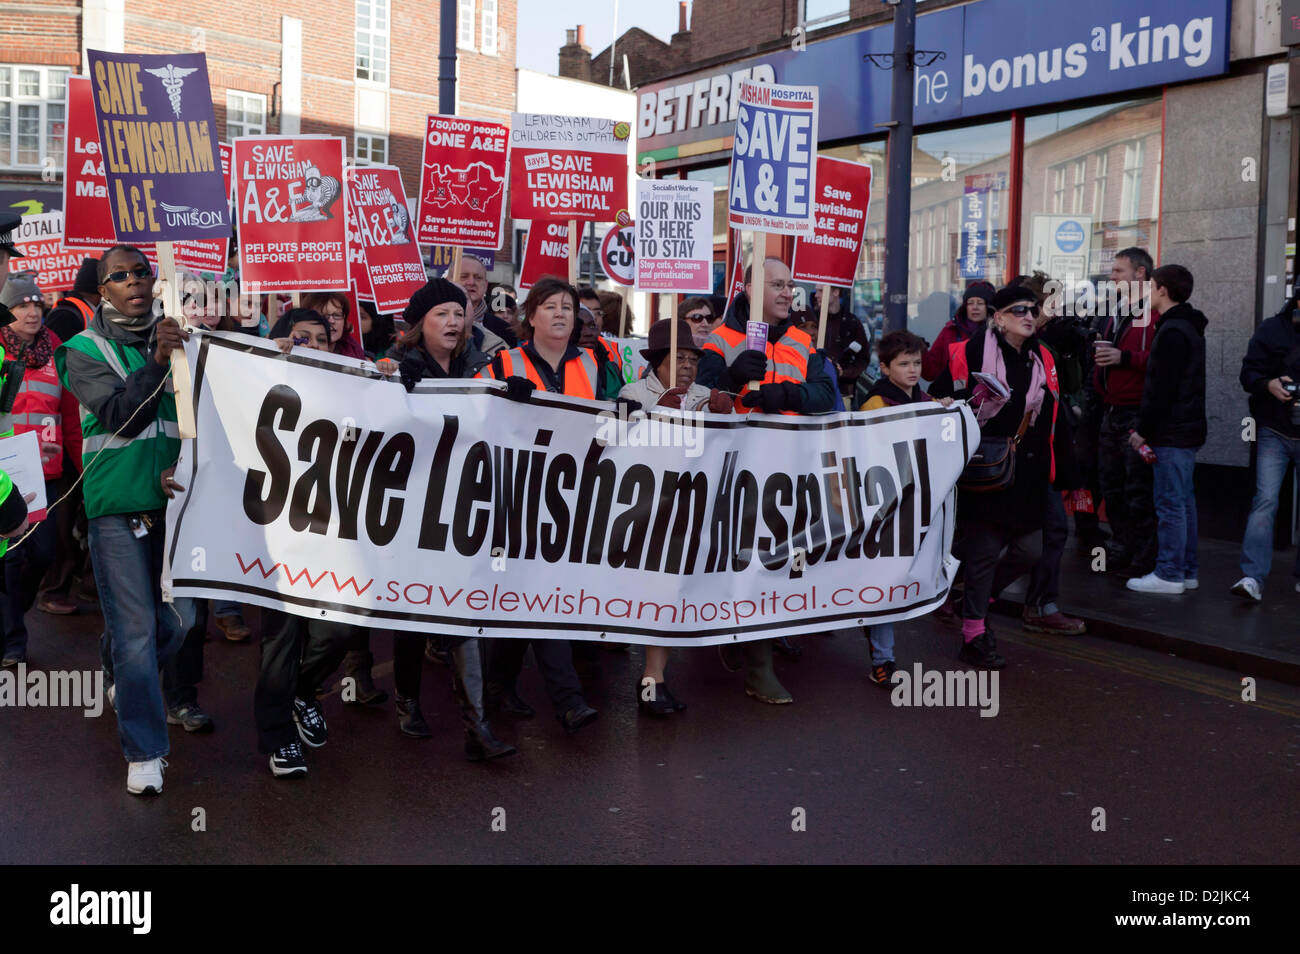 London, UK. 26th January 2013. Demonstrators on a march against Lewisham NHS cuts to the Maternity and A&E departments - Stock Image